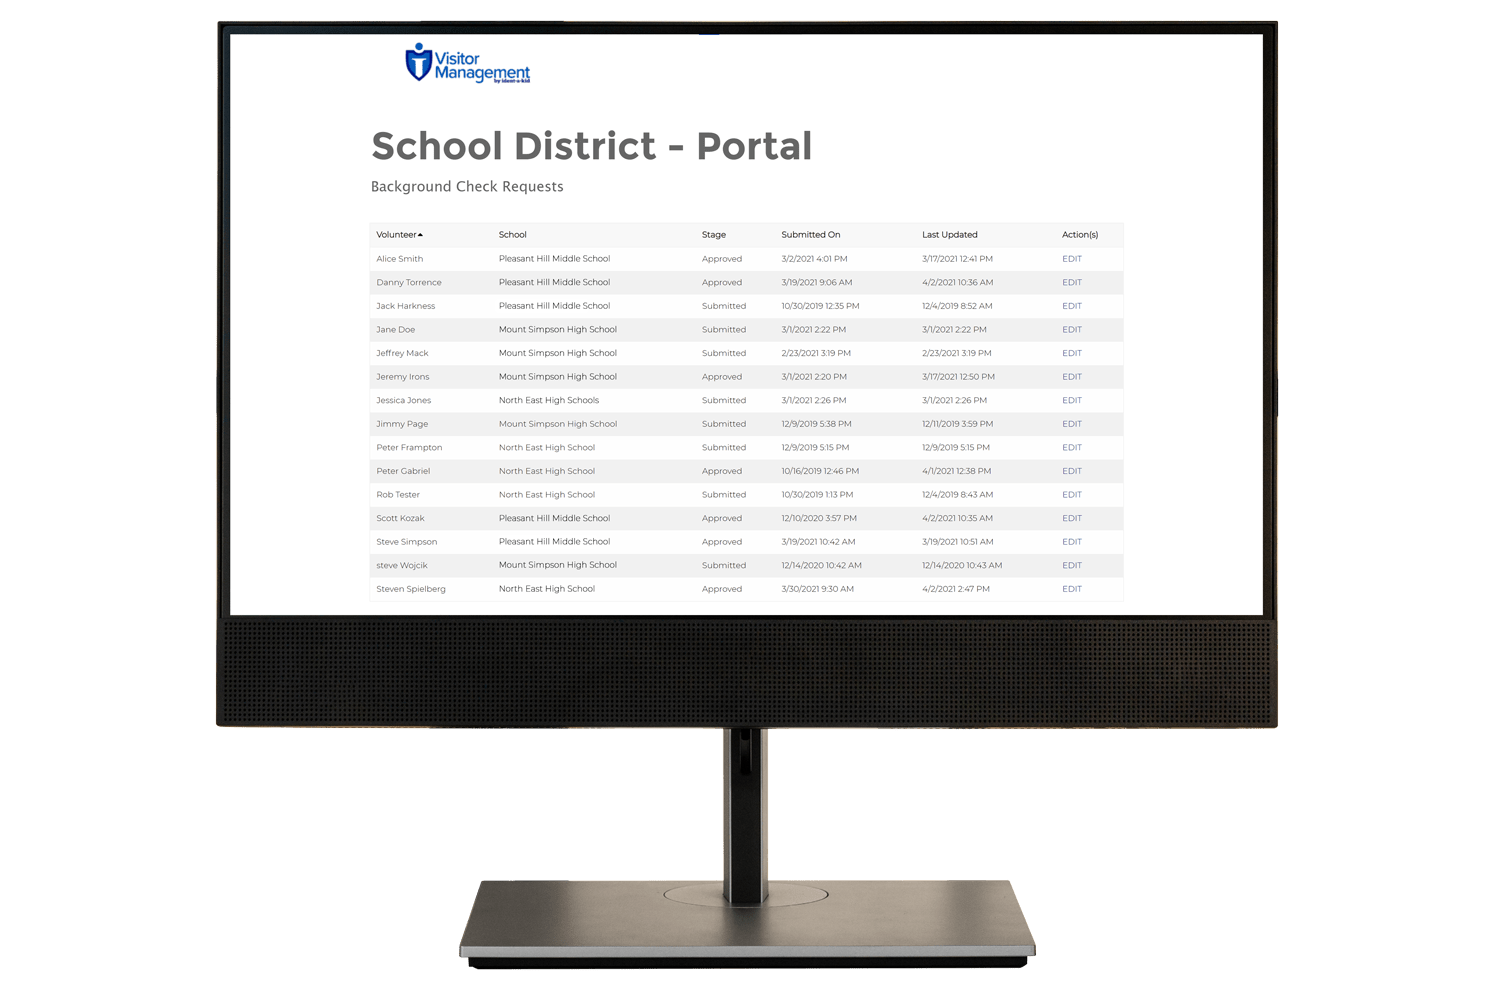 Ident-A-Kid's School District Portal for the school volunteer management system.